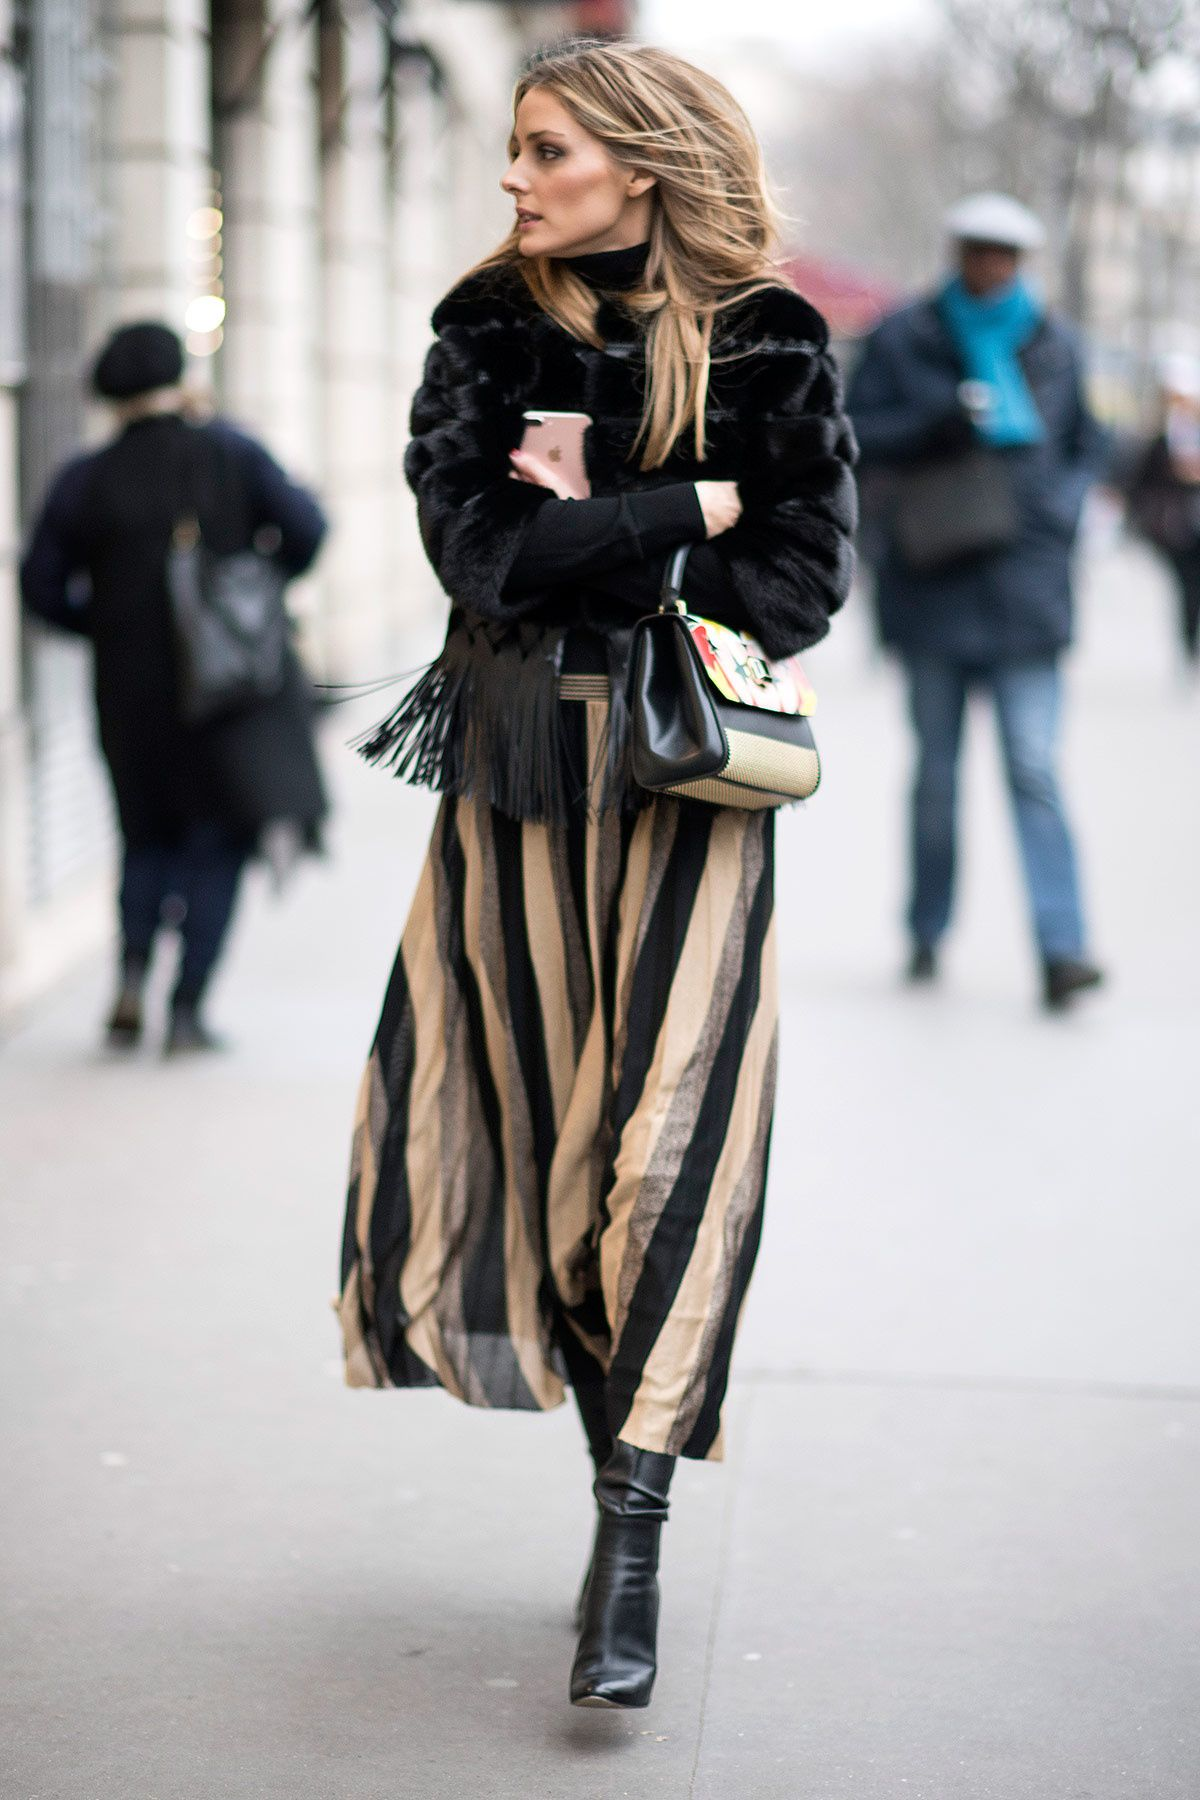 25 all time best pictures of olivia palermo style and fashion - Olivia Palermo Seen In The Streets Of Paris During Haute Couture Spring Summer 2017 Fashion Week On January 25 2017 In Paris France